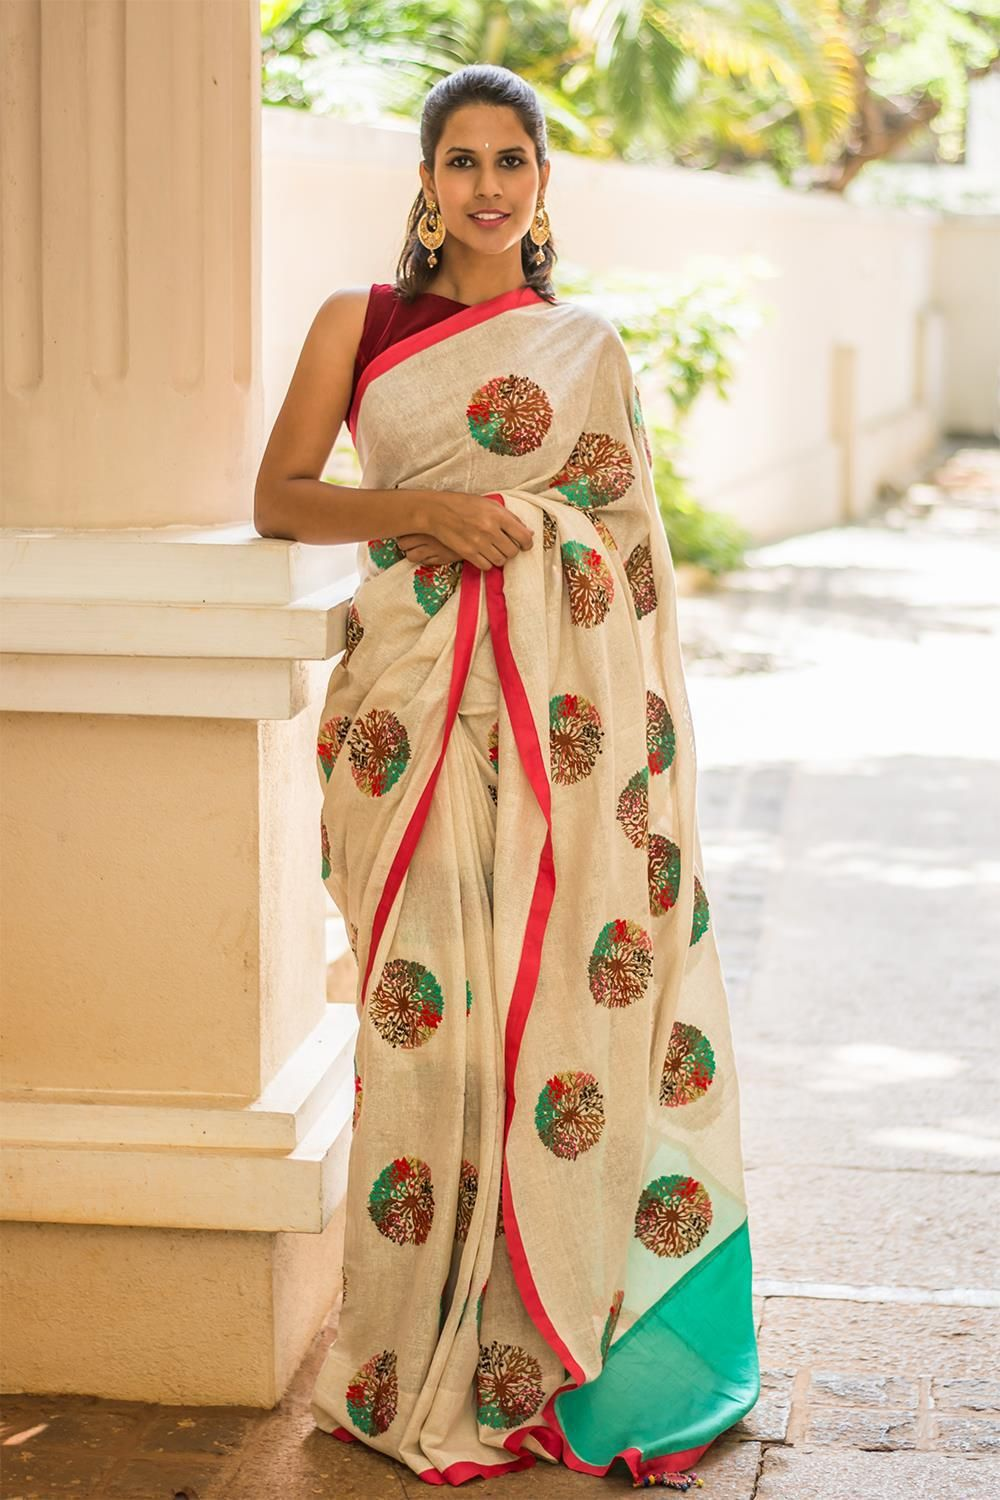 8c6e4bc99b788 House Of Blouse Offwhite Cotton Jute Saree With Embroidered Flowers  Summer   Festive  CottonSaree